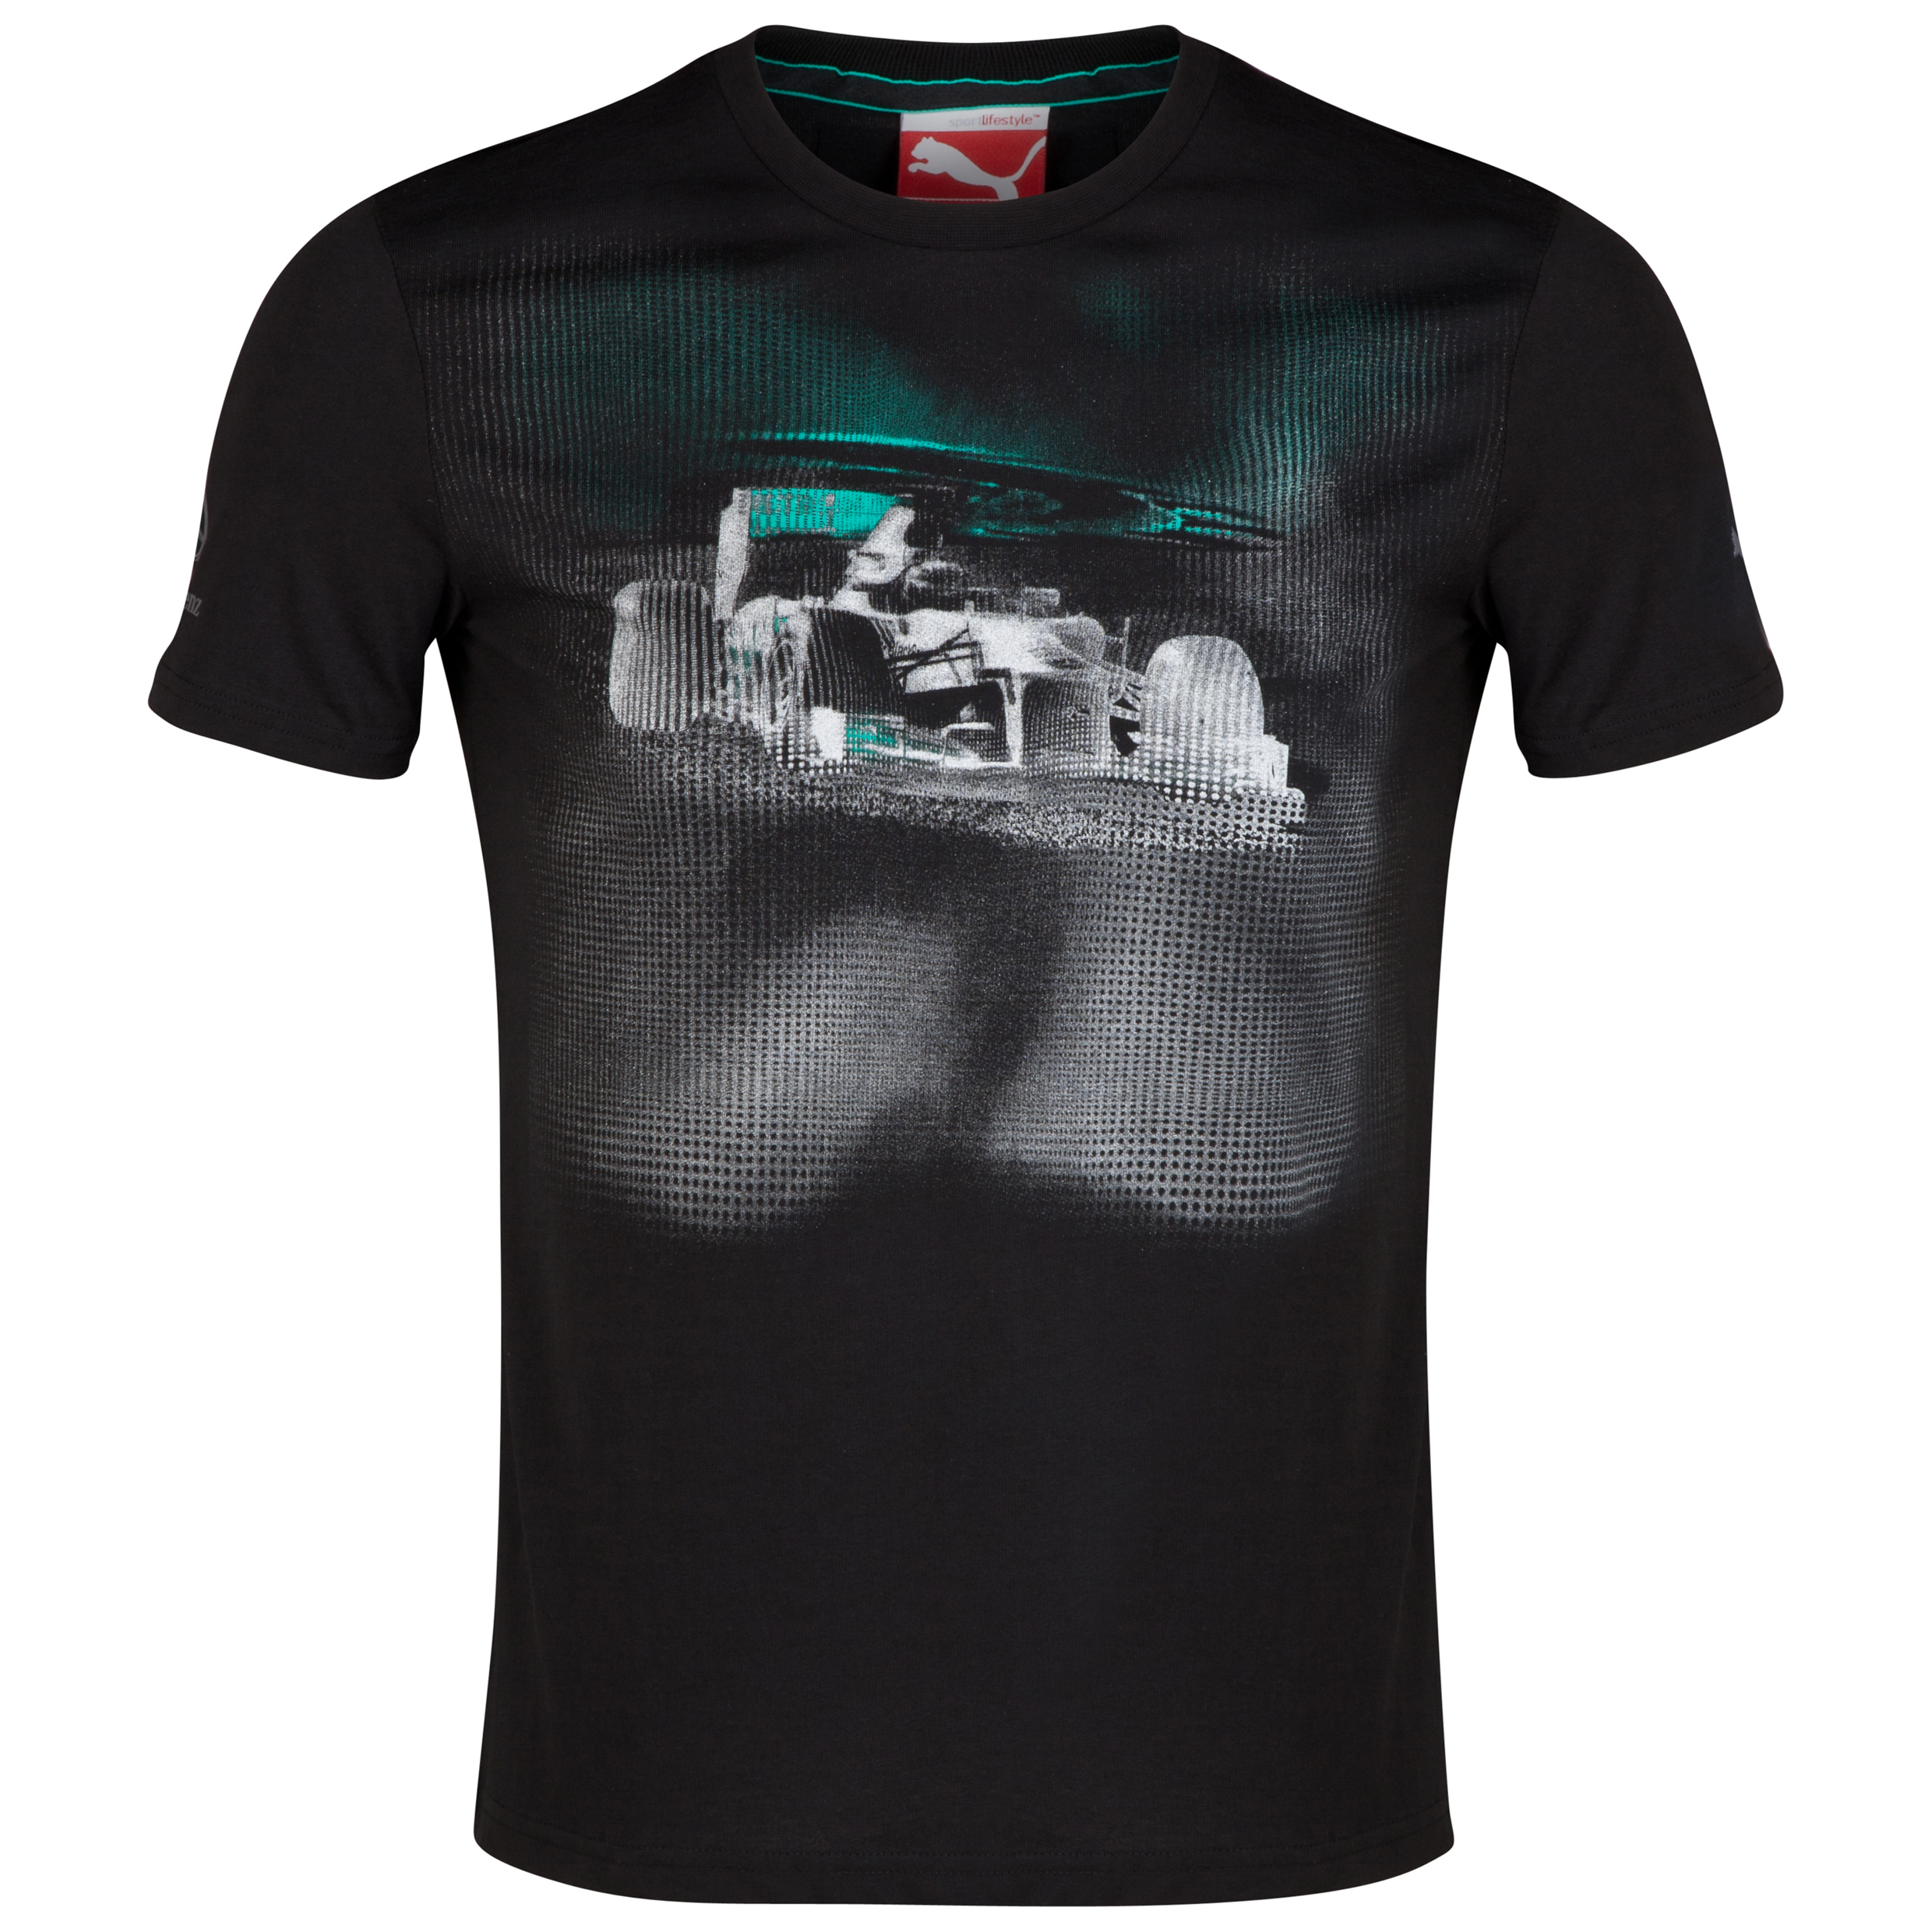 Mercedes AMG PETRONAS Graphic T-Shirt Black